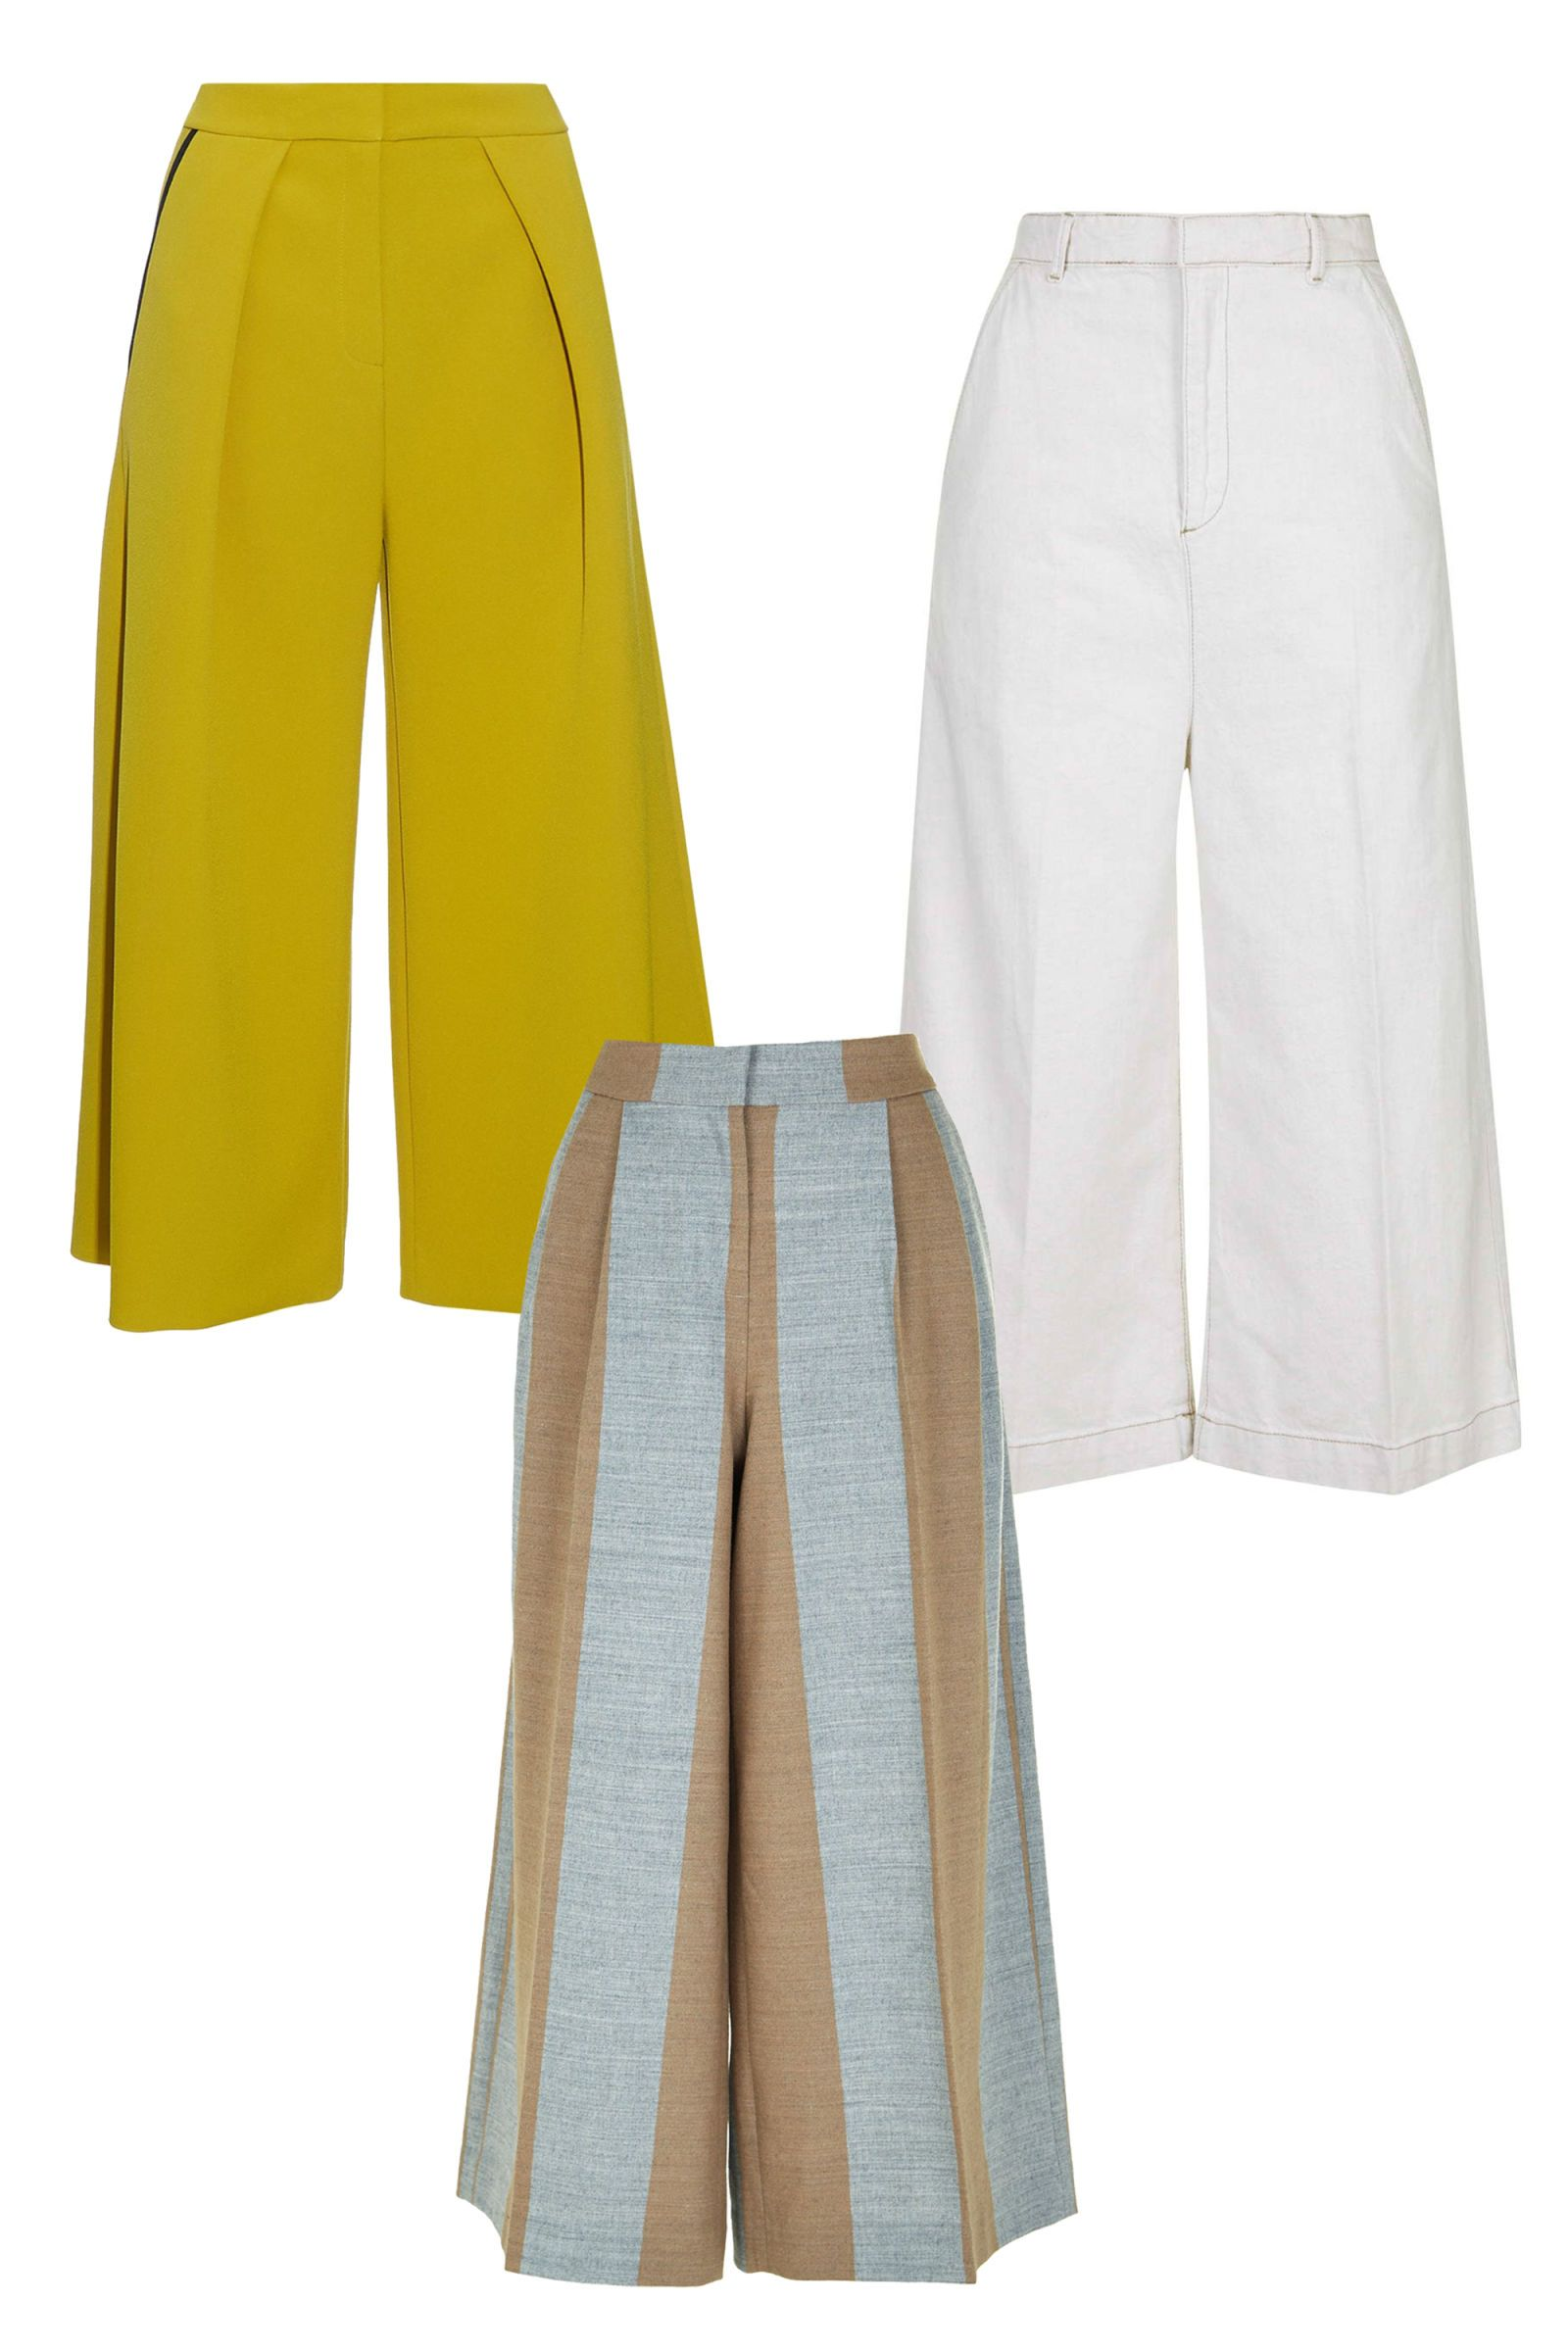 Culottes are the perfect silhouette for this First-World problem. The wide pant leg is airy enough to let your legs breathe, but there's enough material there to protect your goose bump–covered legs.   Roksanda Olive Deven Bonded Crepe Culottes, $1,025; matchesfashion.com  Tibi Horizon Stripe Edie Culottes, $495; tibi.com  Topshop Moto Straight Culottes, $70; topshop.com   - ELLE.com